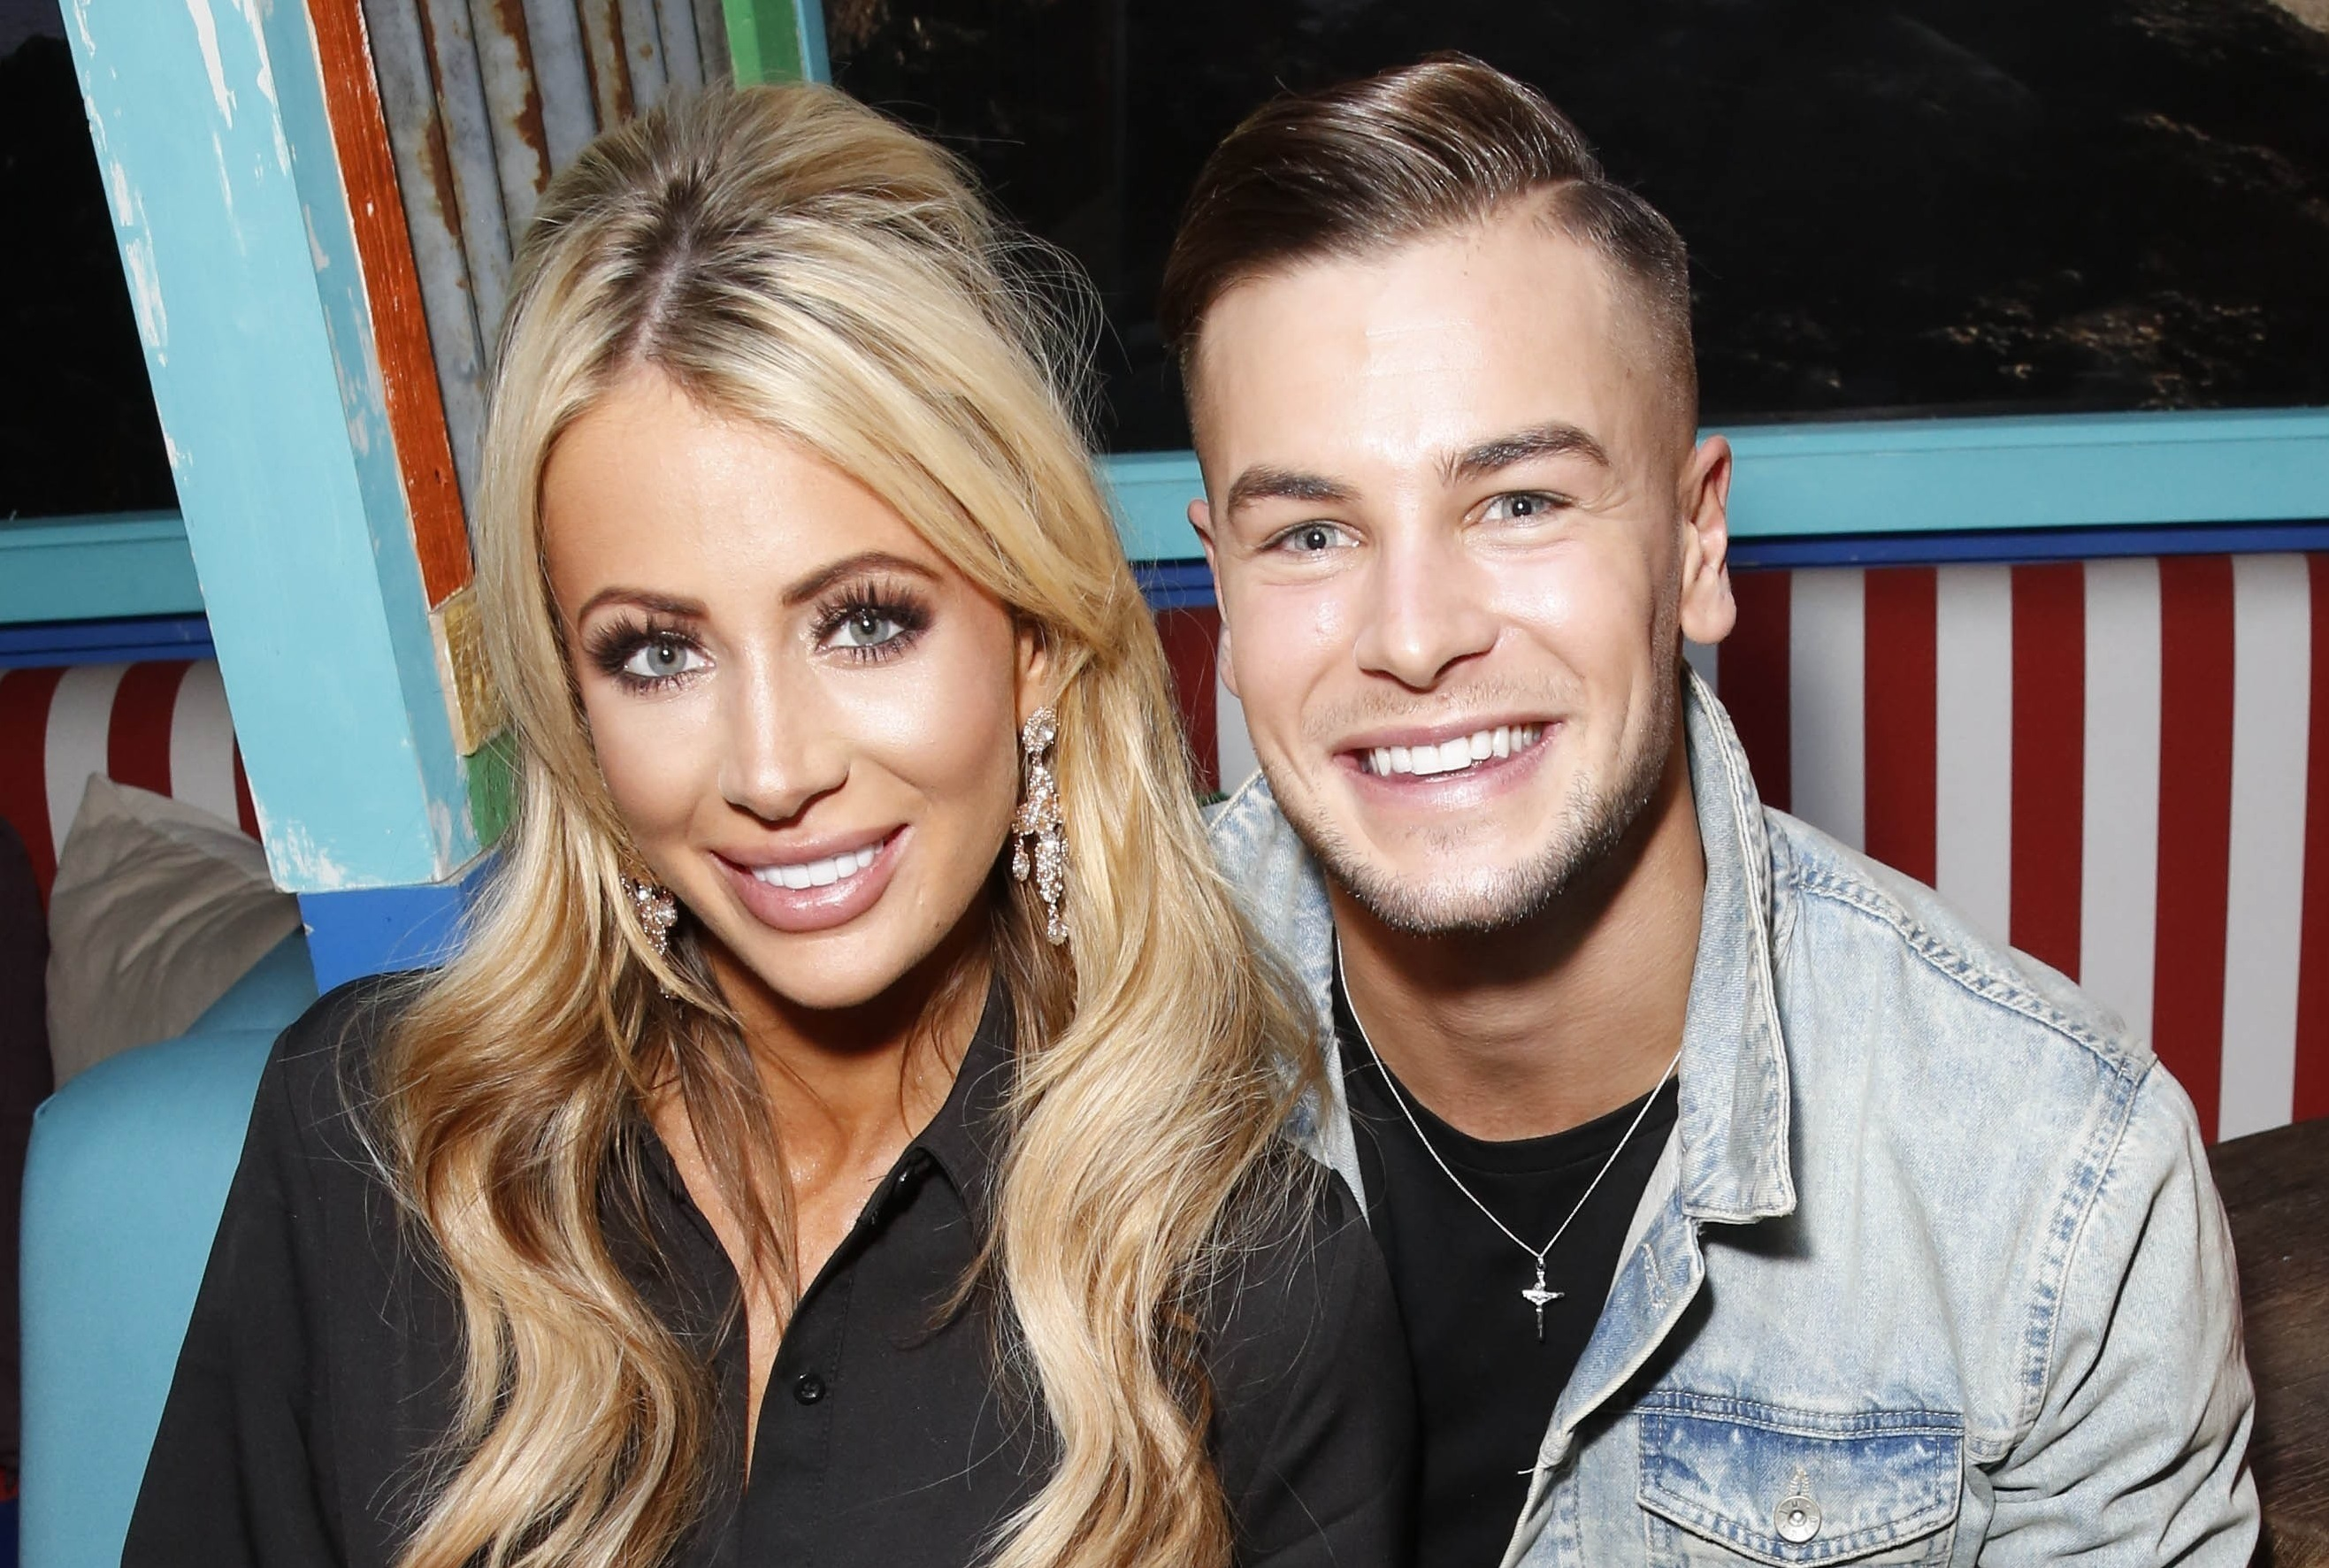 Olivia Attwood wades into Twitter row between boyfriend Chris Hughes and Katie Price